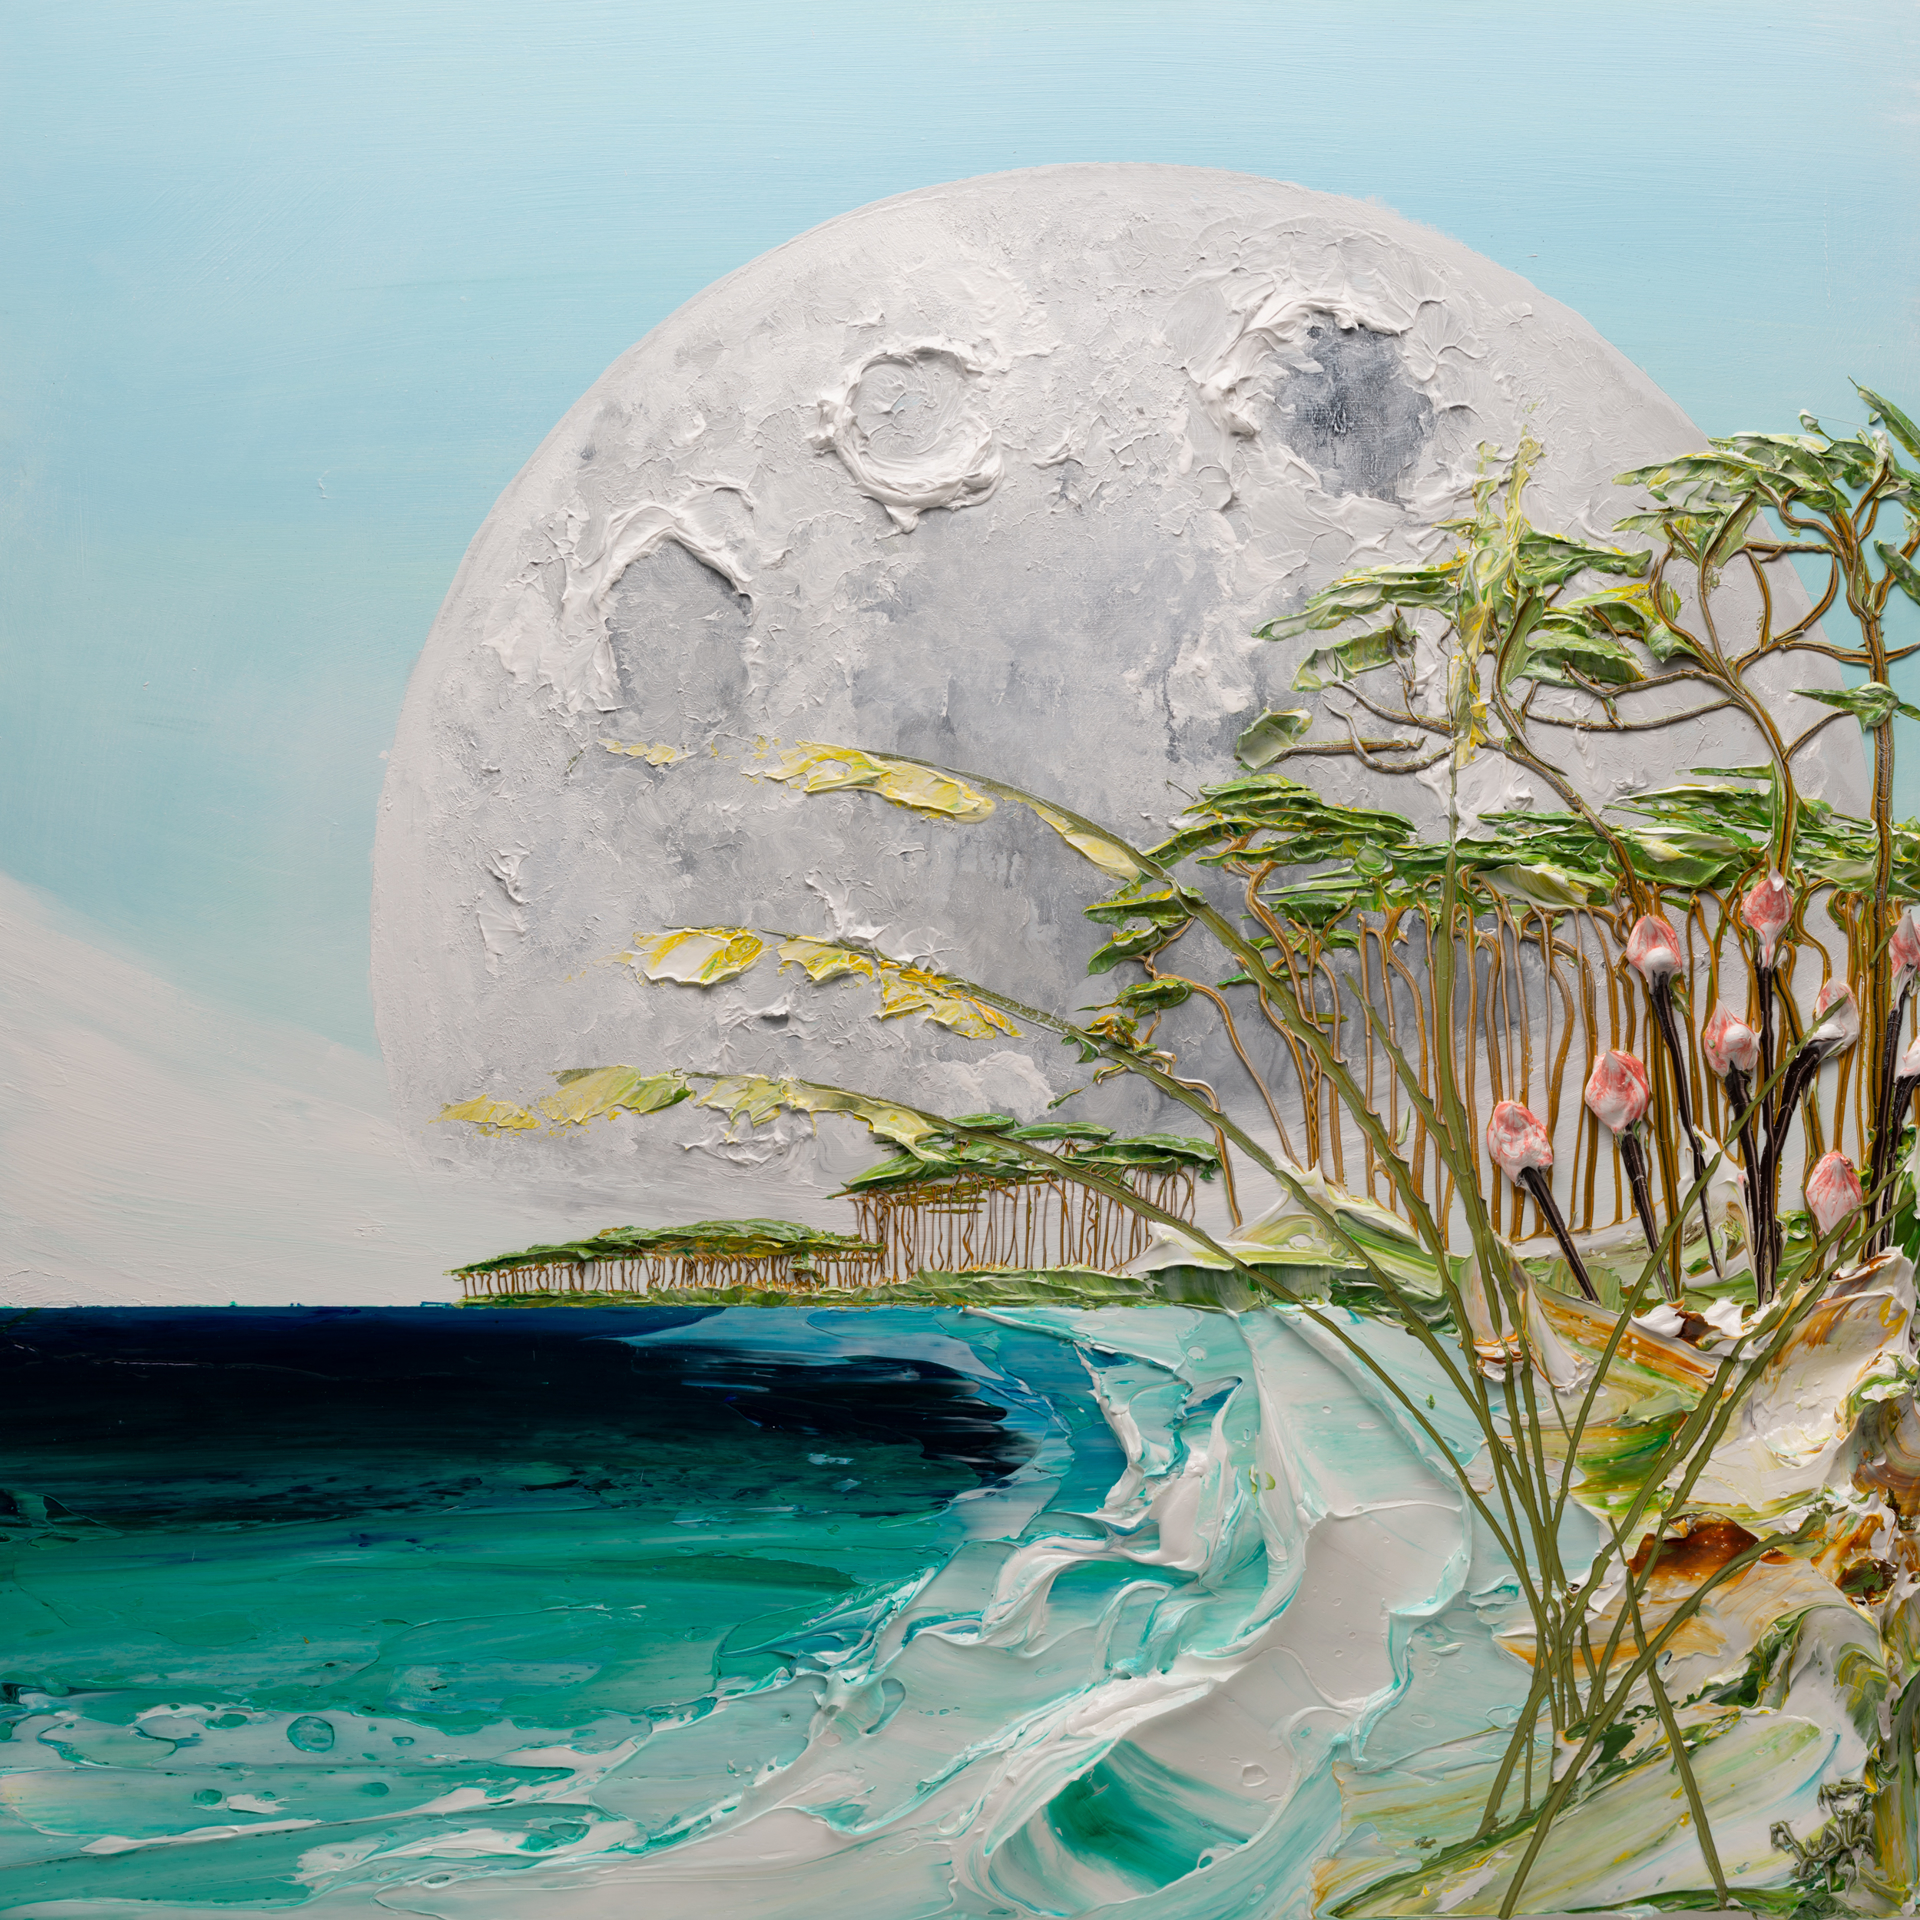 MOONSCAPE MS-48X48-2019-273 by JUSTIN GAFFREY